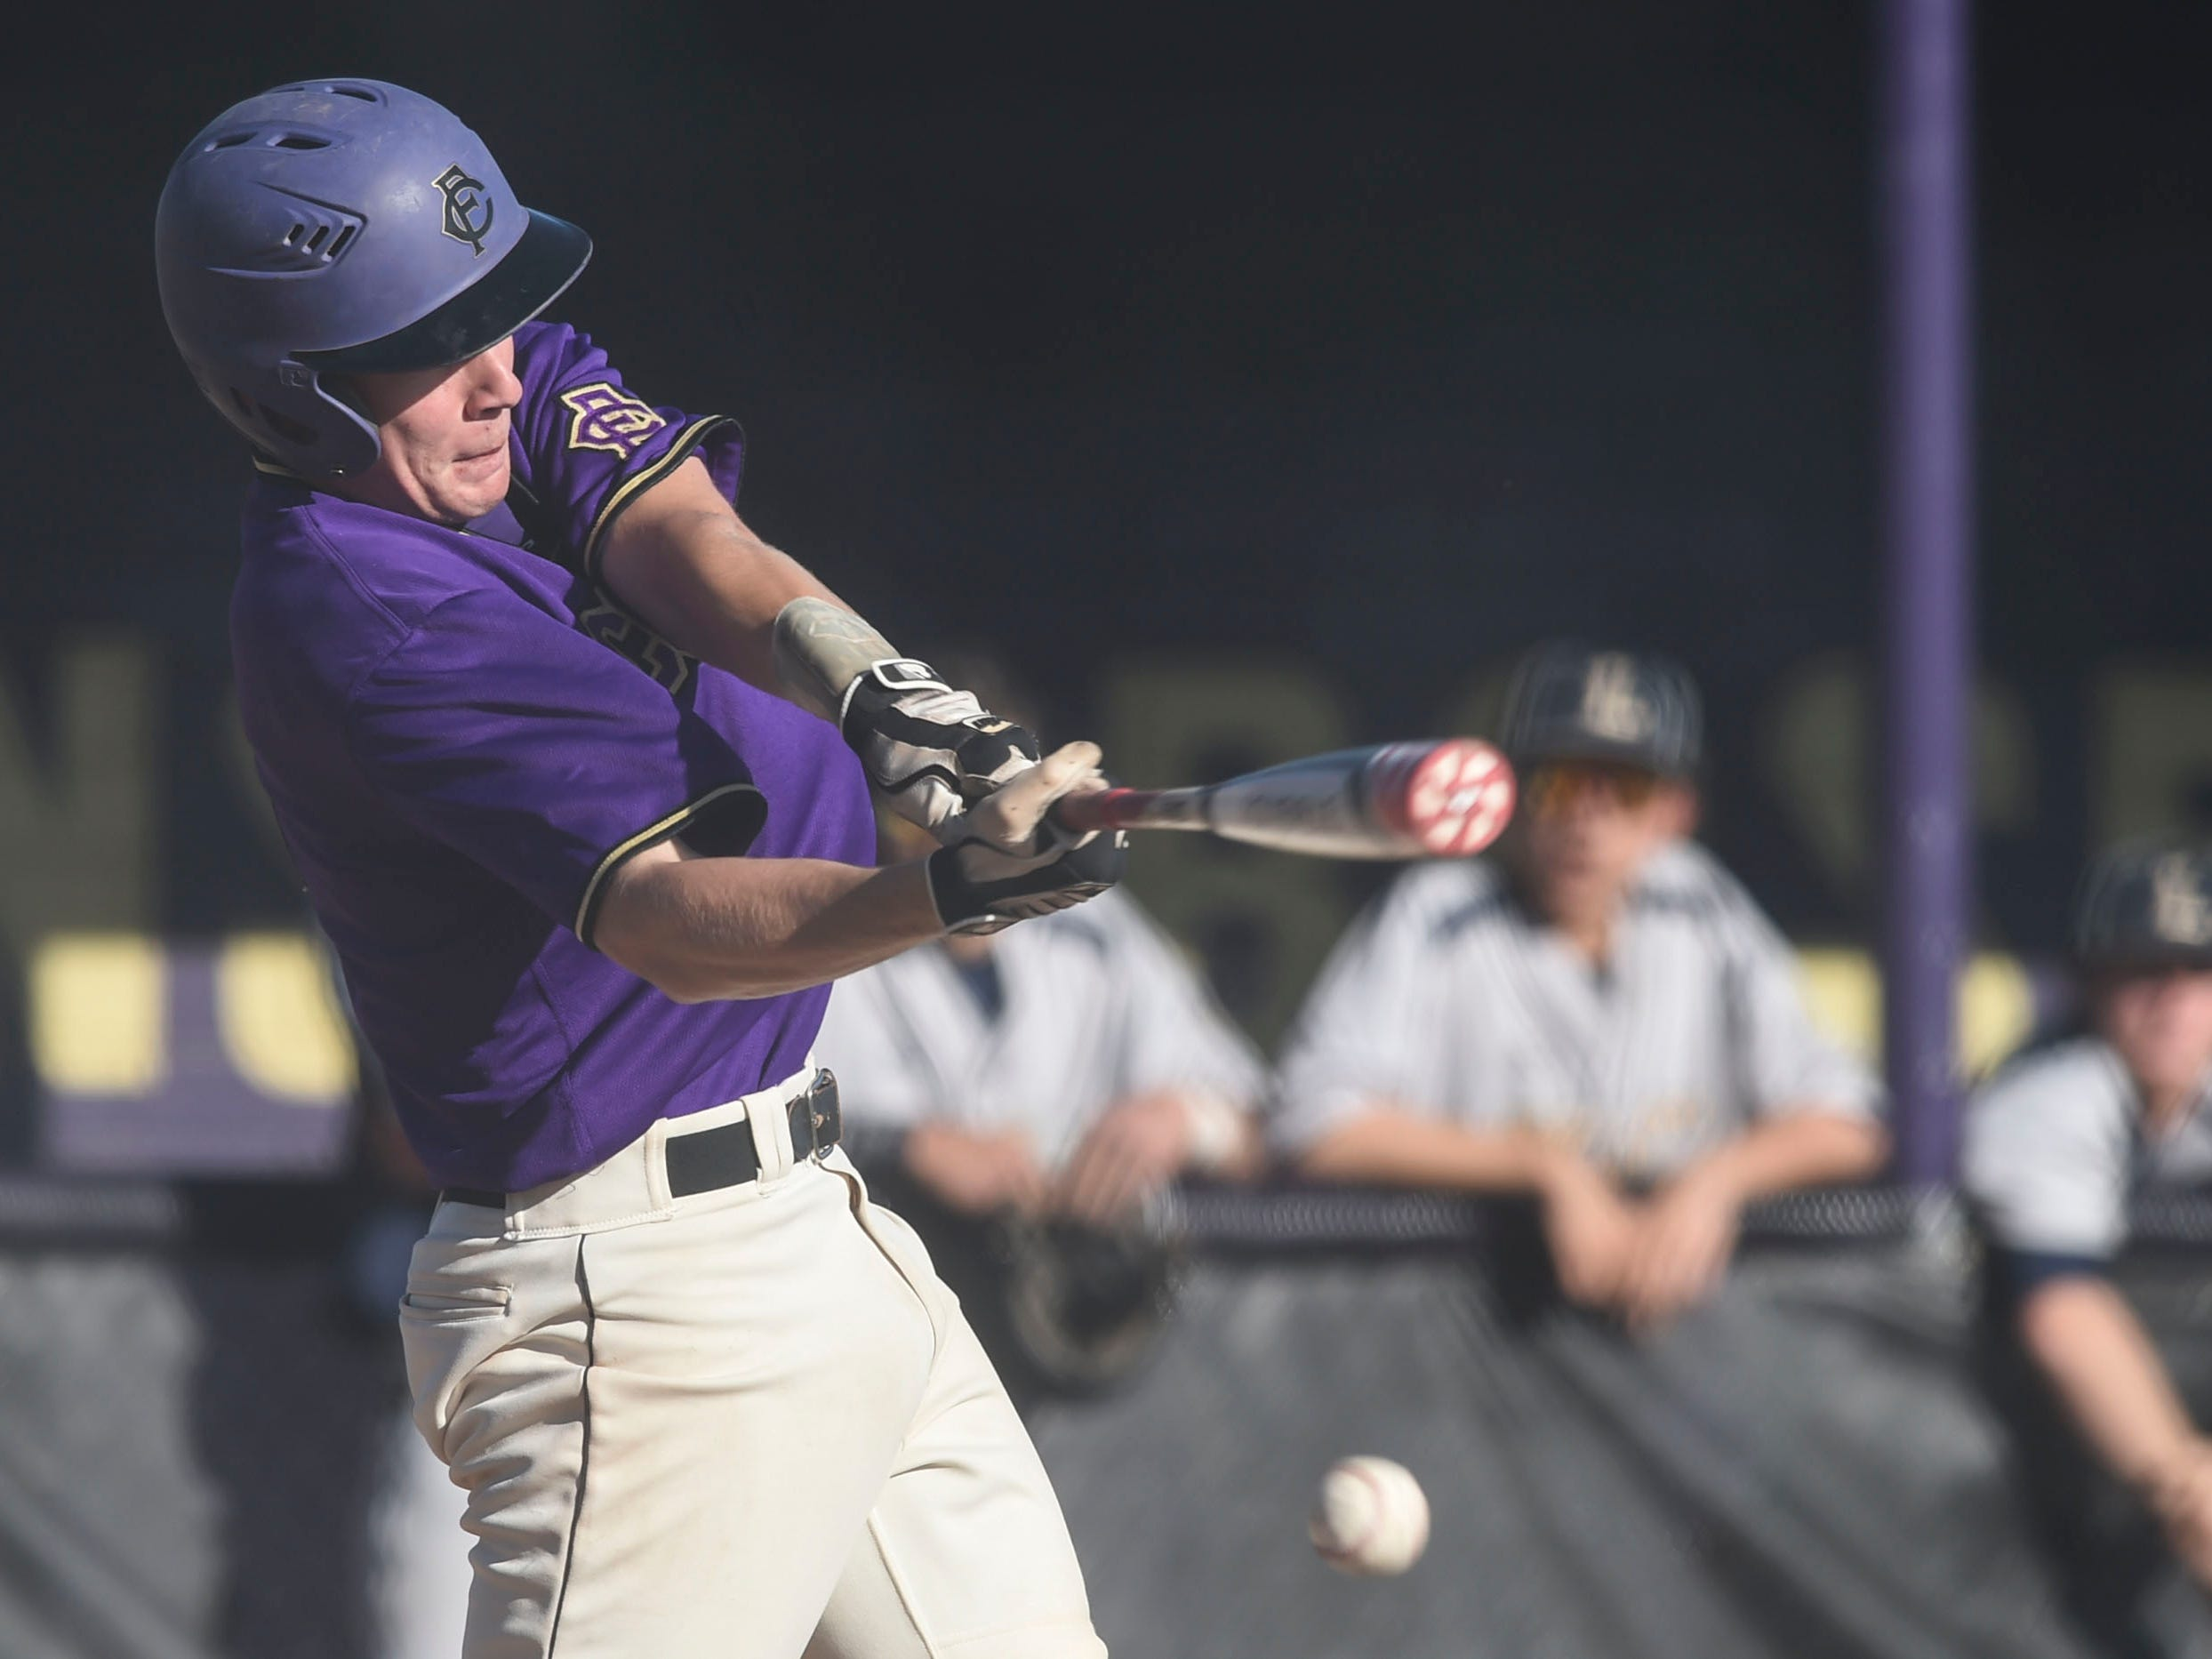 The Fort Collins High School baseball team plays Rocky Mountain at 6:30 p.m. Tuesday at City Park.